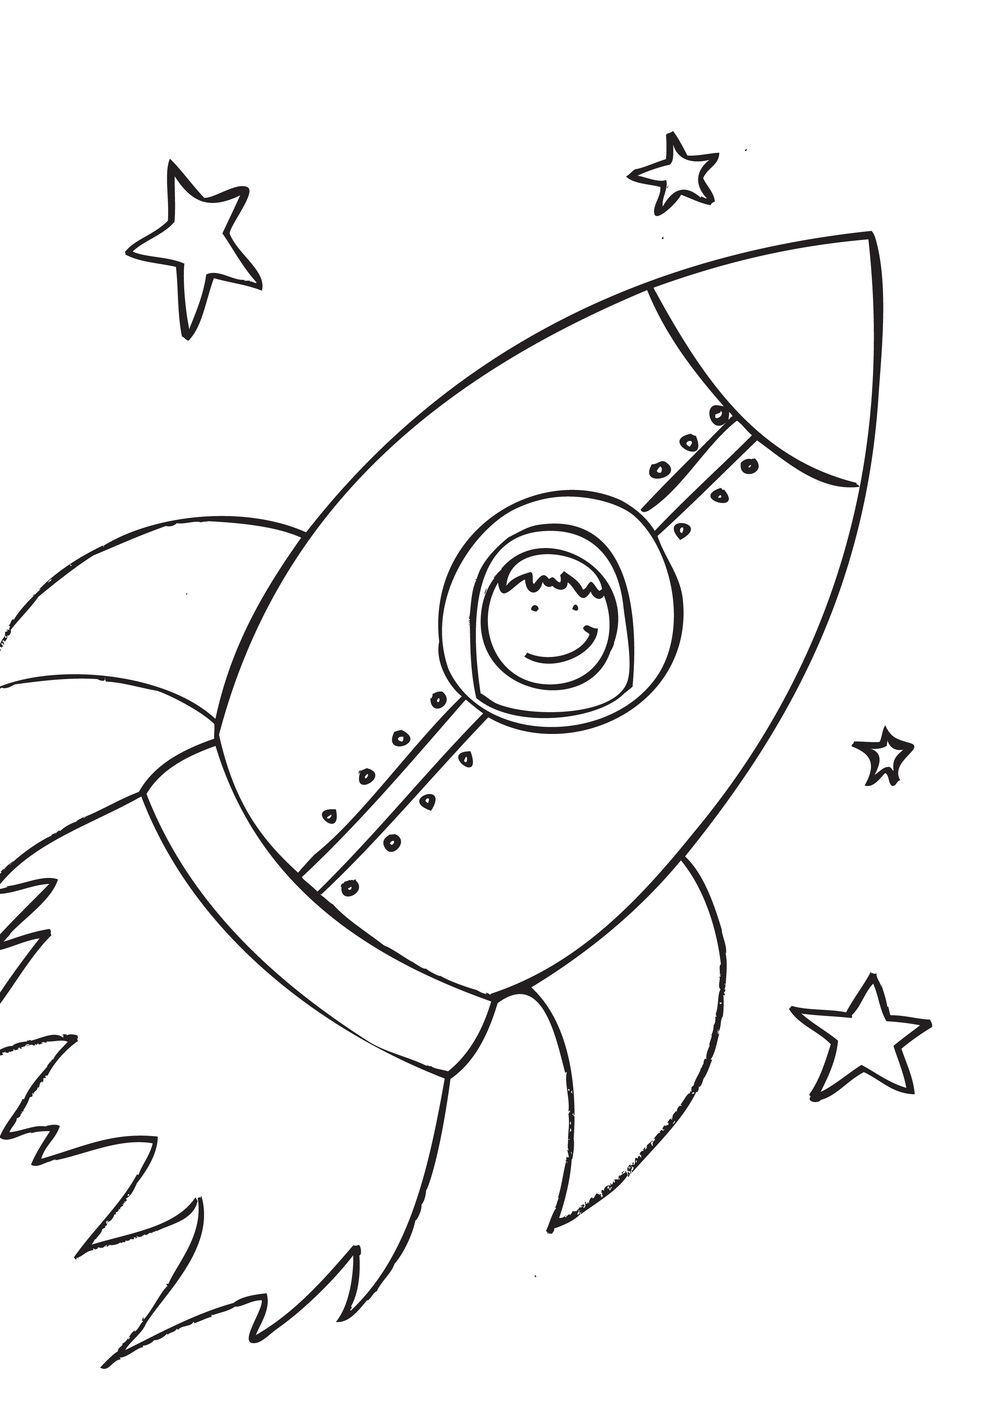 1000x1411 Tested Rocket Coloring Pages Free Printable Ship For Kids